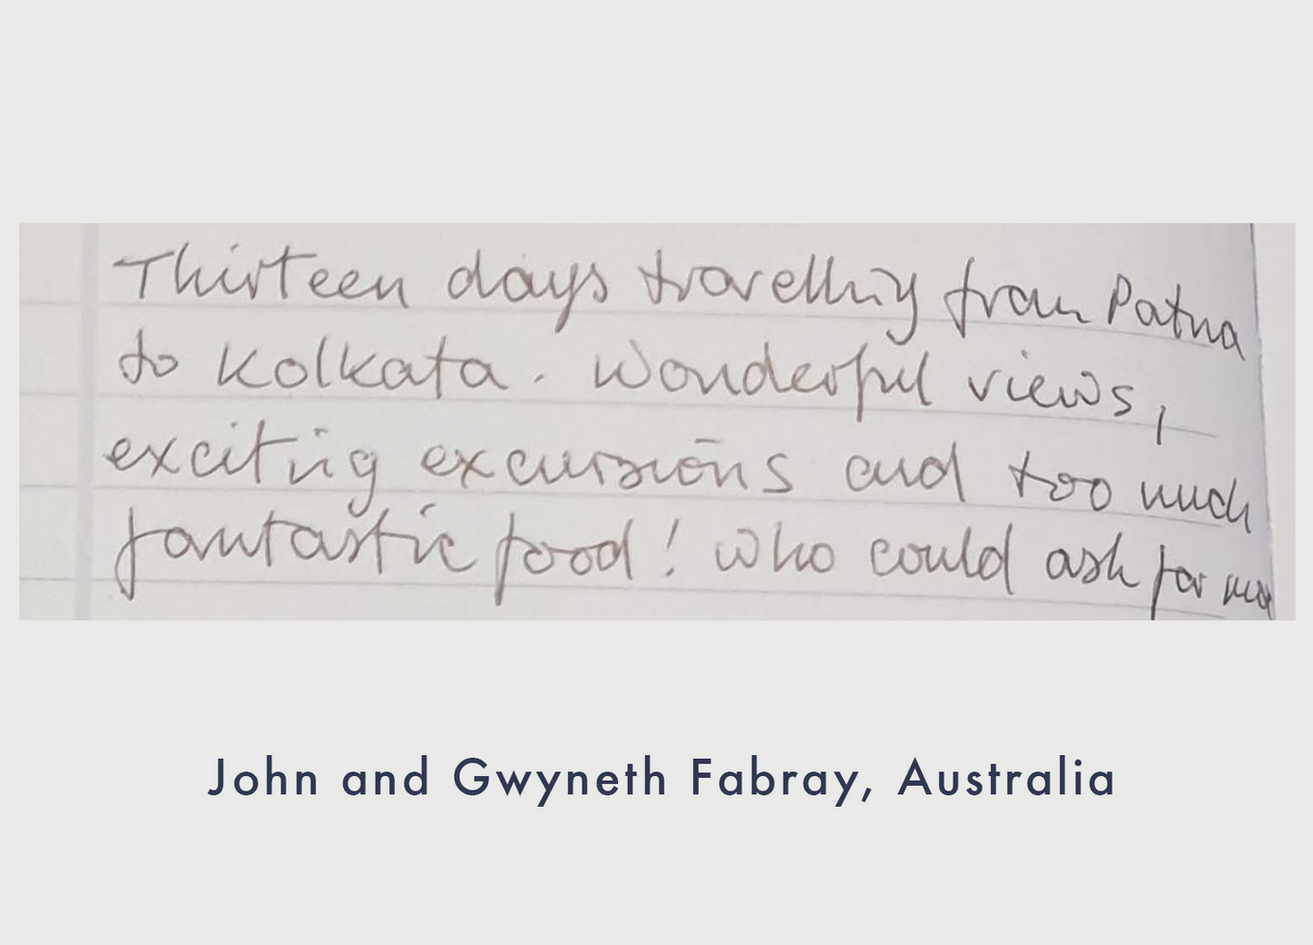 john and gwyneth fabray australia.png